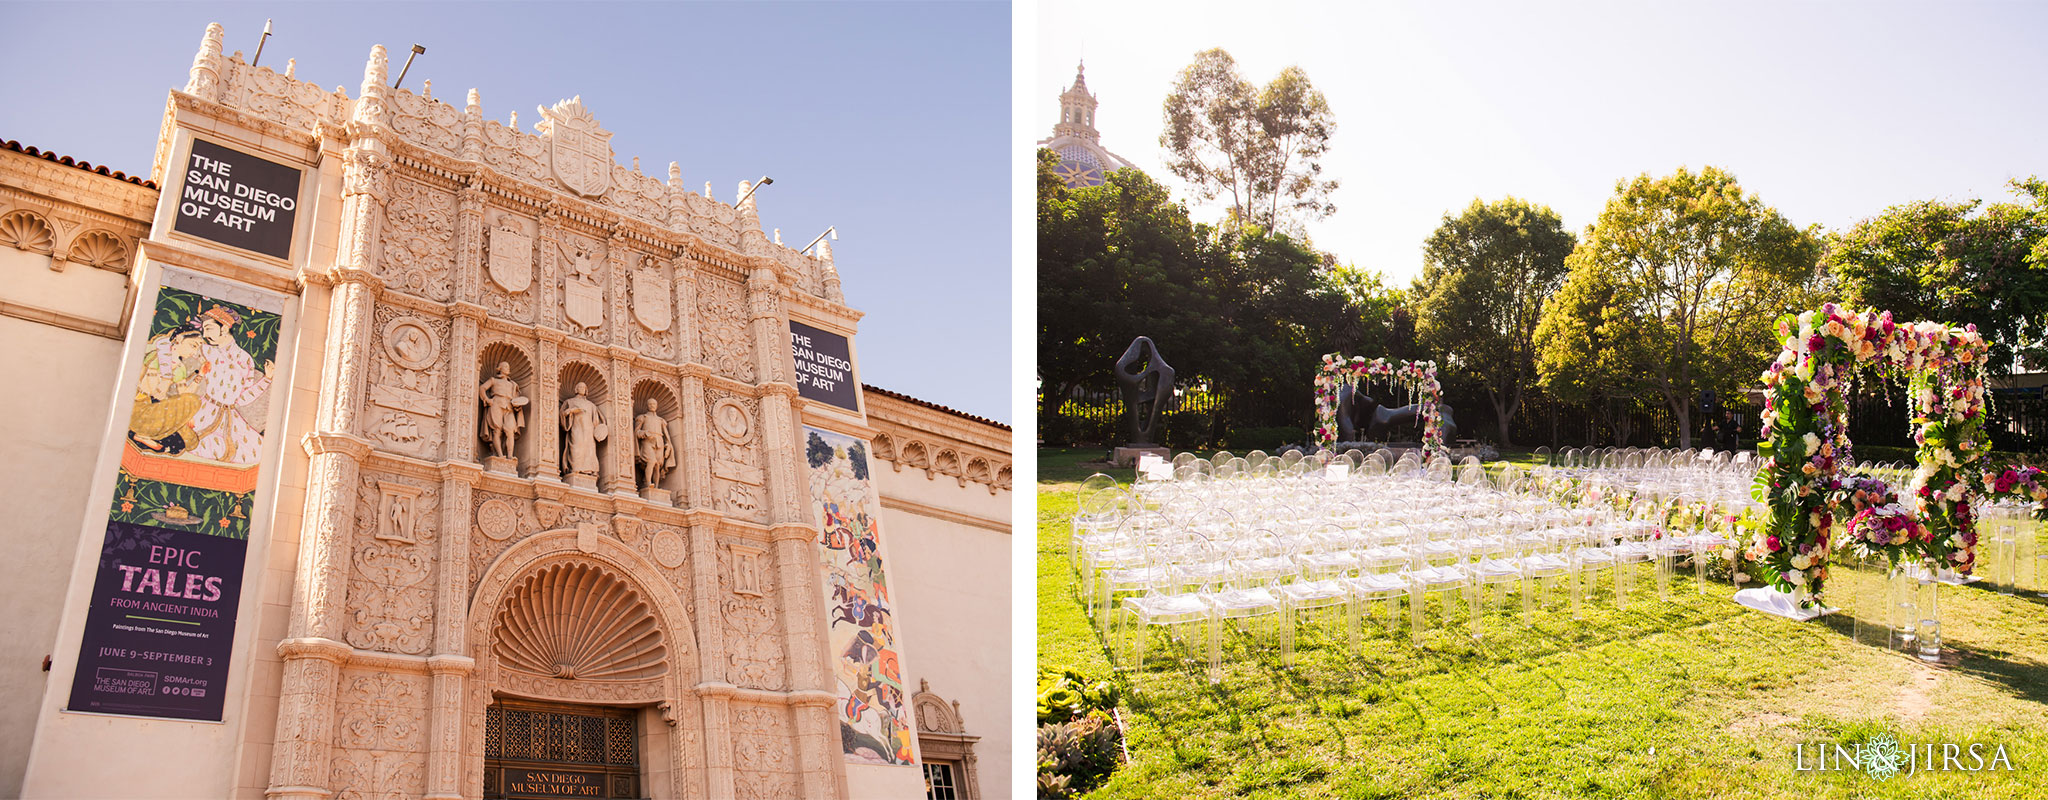 san diego museum of art architecture wedding ceremony photography